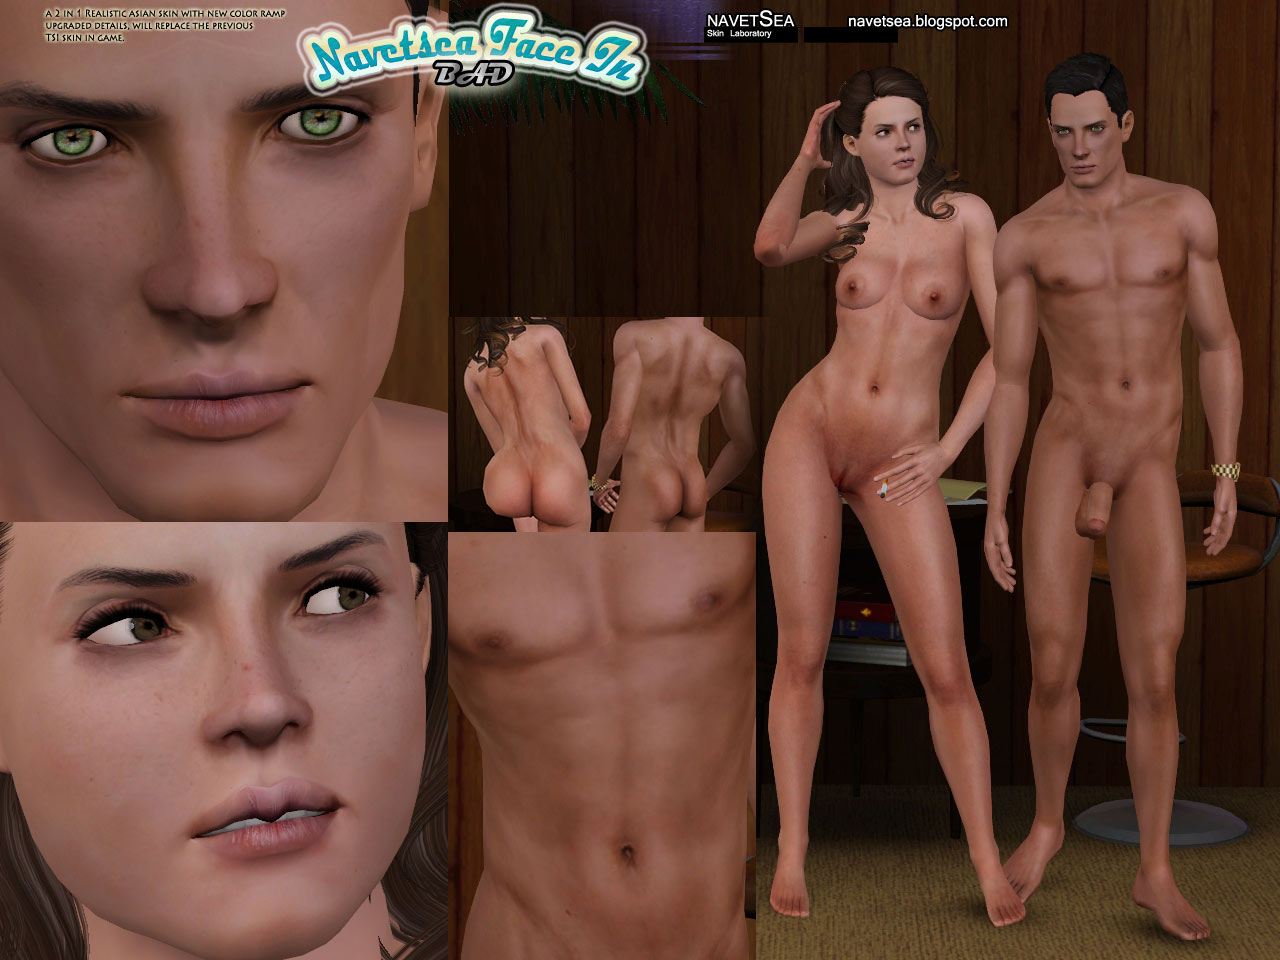 Ts3 nude patch nude scenes